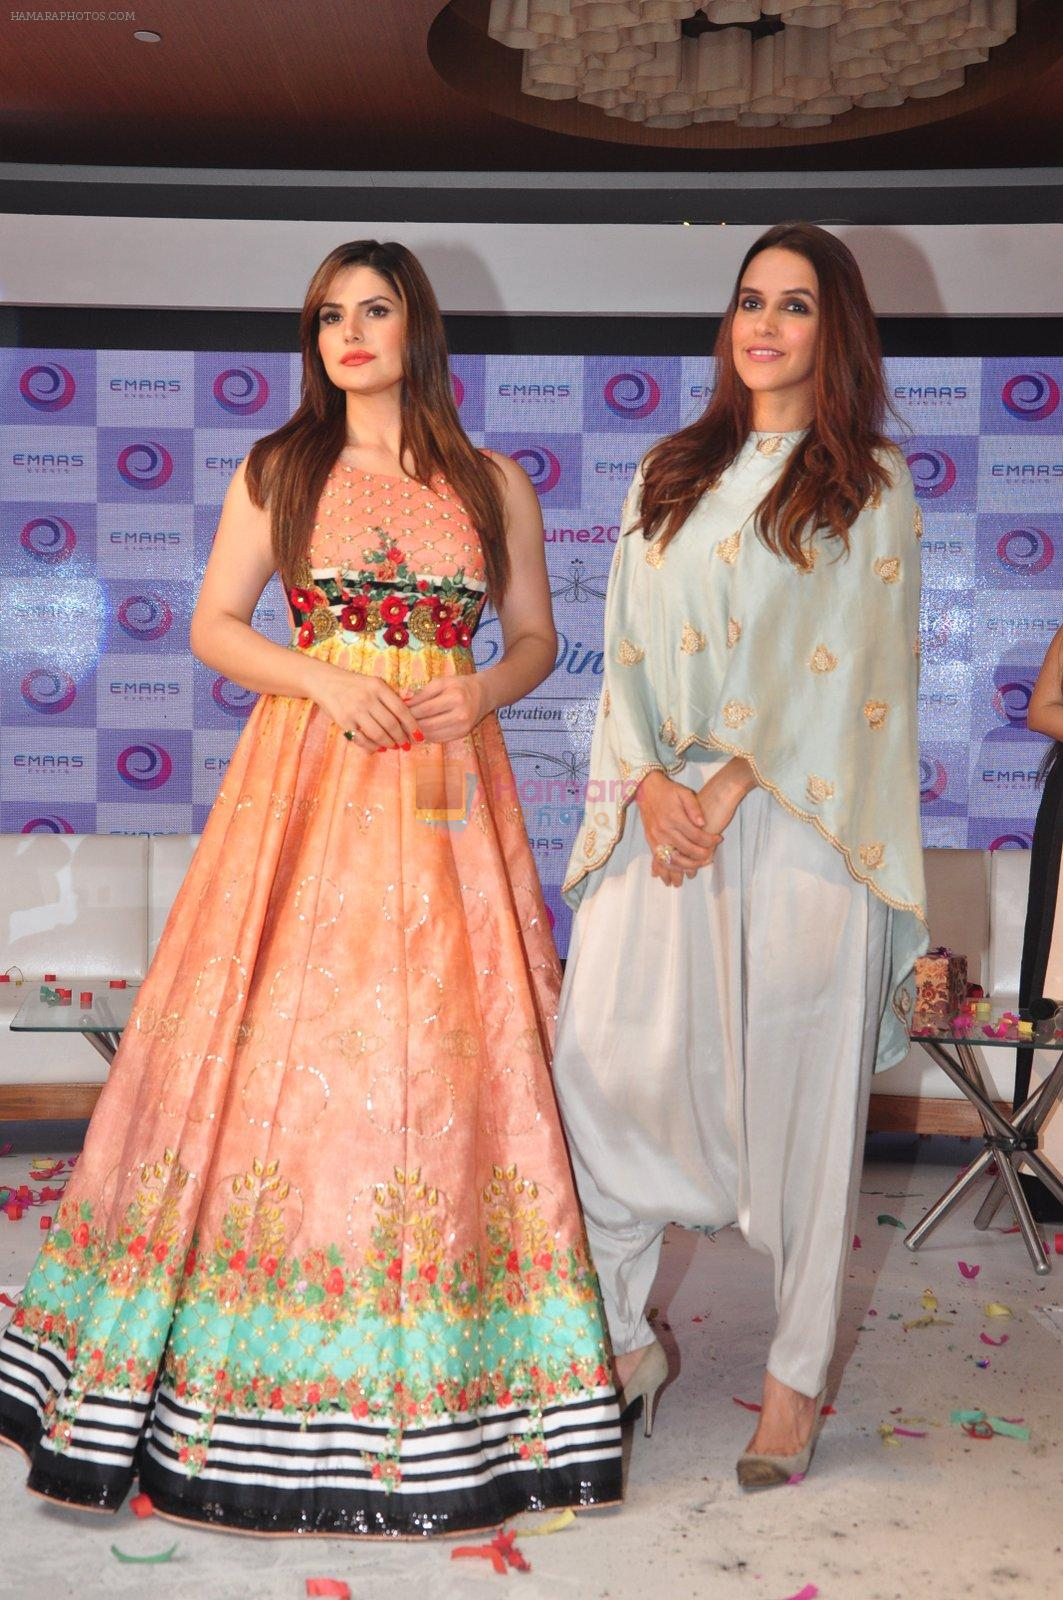 Neha Dhupia, Zarine Khan at the Emars events press conference in Pune on 18th Sept 2016